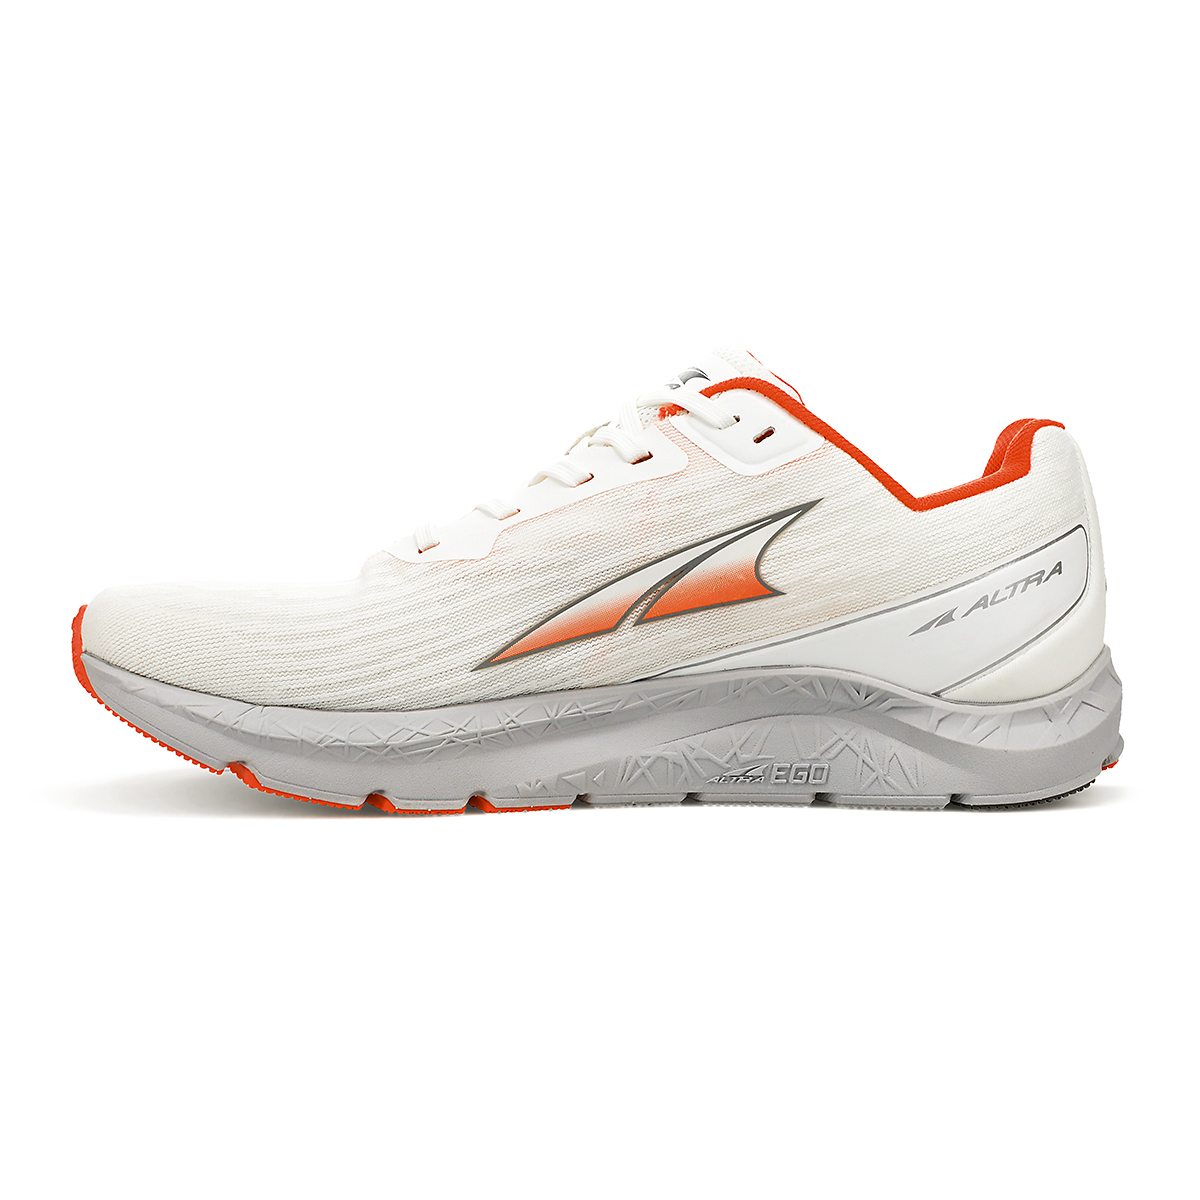 Women's Altra Rivera Running Shoe - Color: White/Coral - Size: 5.5 - Width: Regular, White/Coral, large, image 2